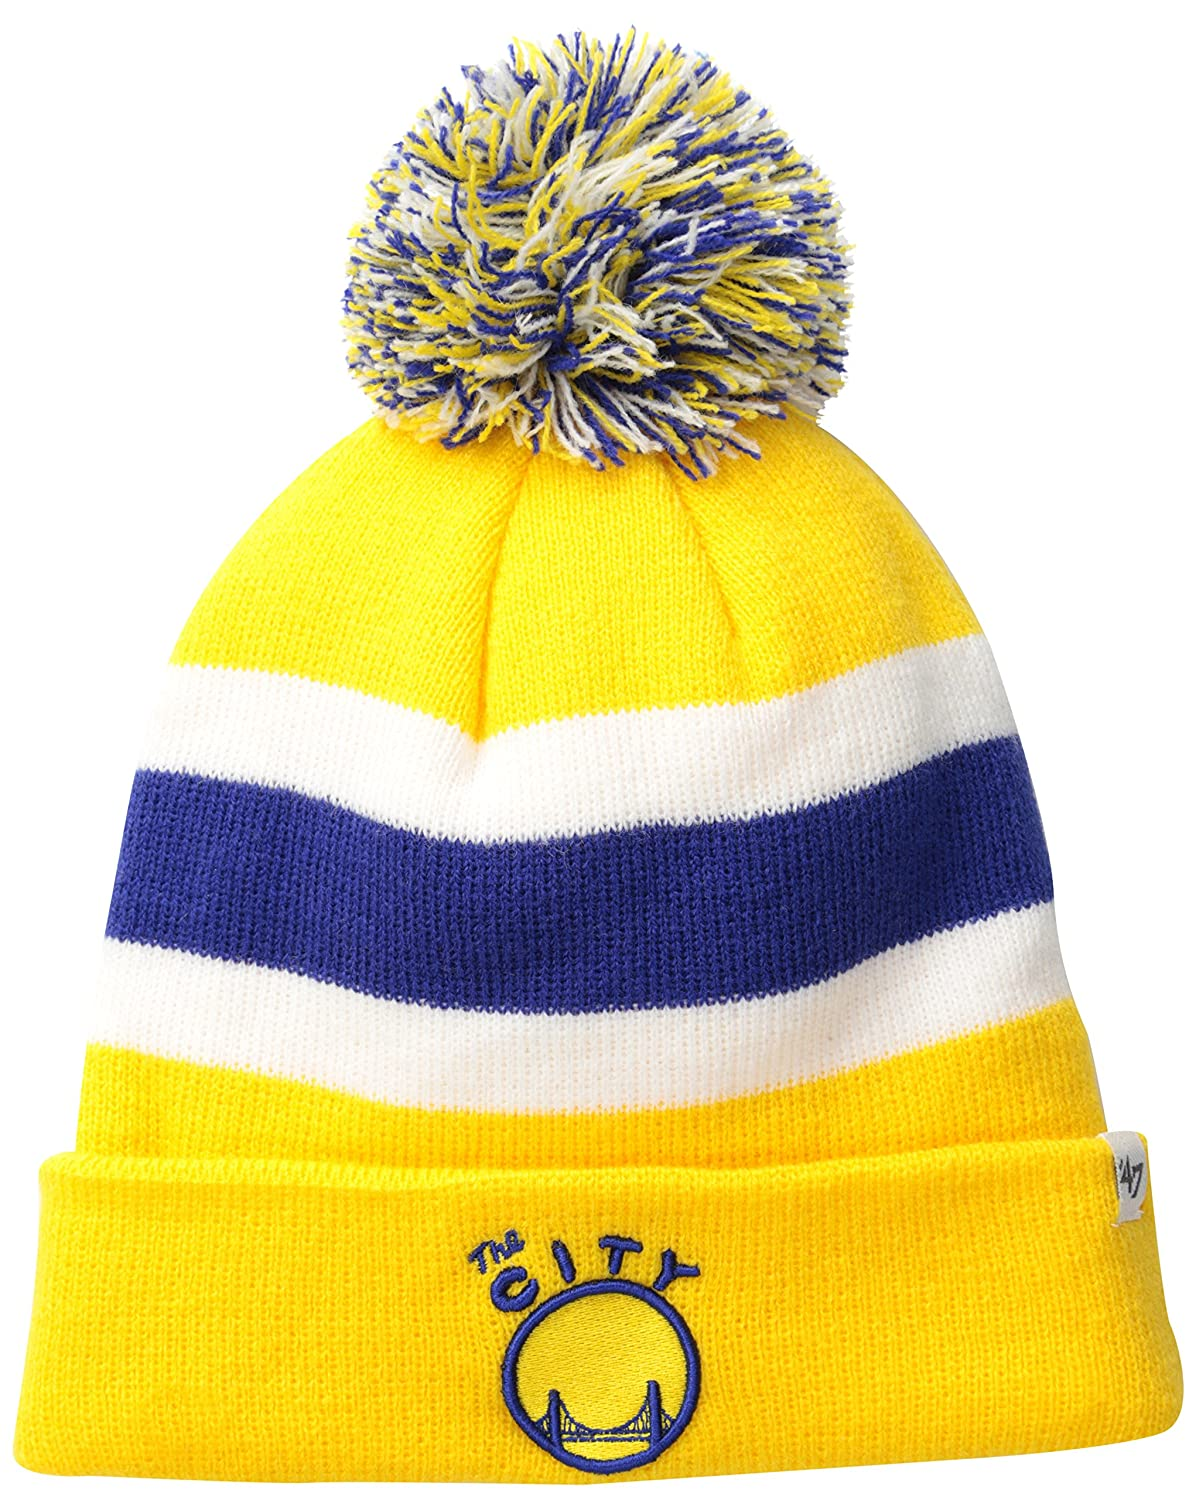 competitive price ba4eb 4a5a3 Amazon.com   NBA Golden State Warriors  47 Brand Breakaway Cuff Knit Hat  with Pom, One Size, Yellow Gold   Sports   Outdoors